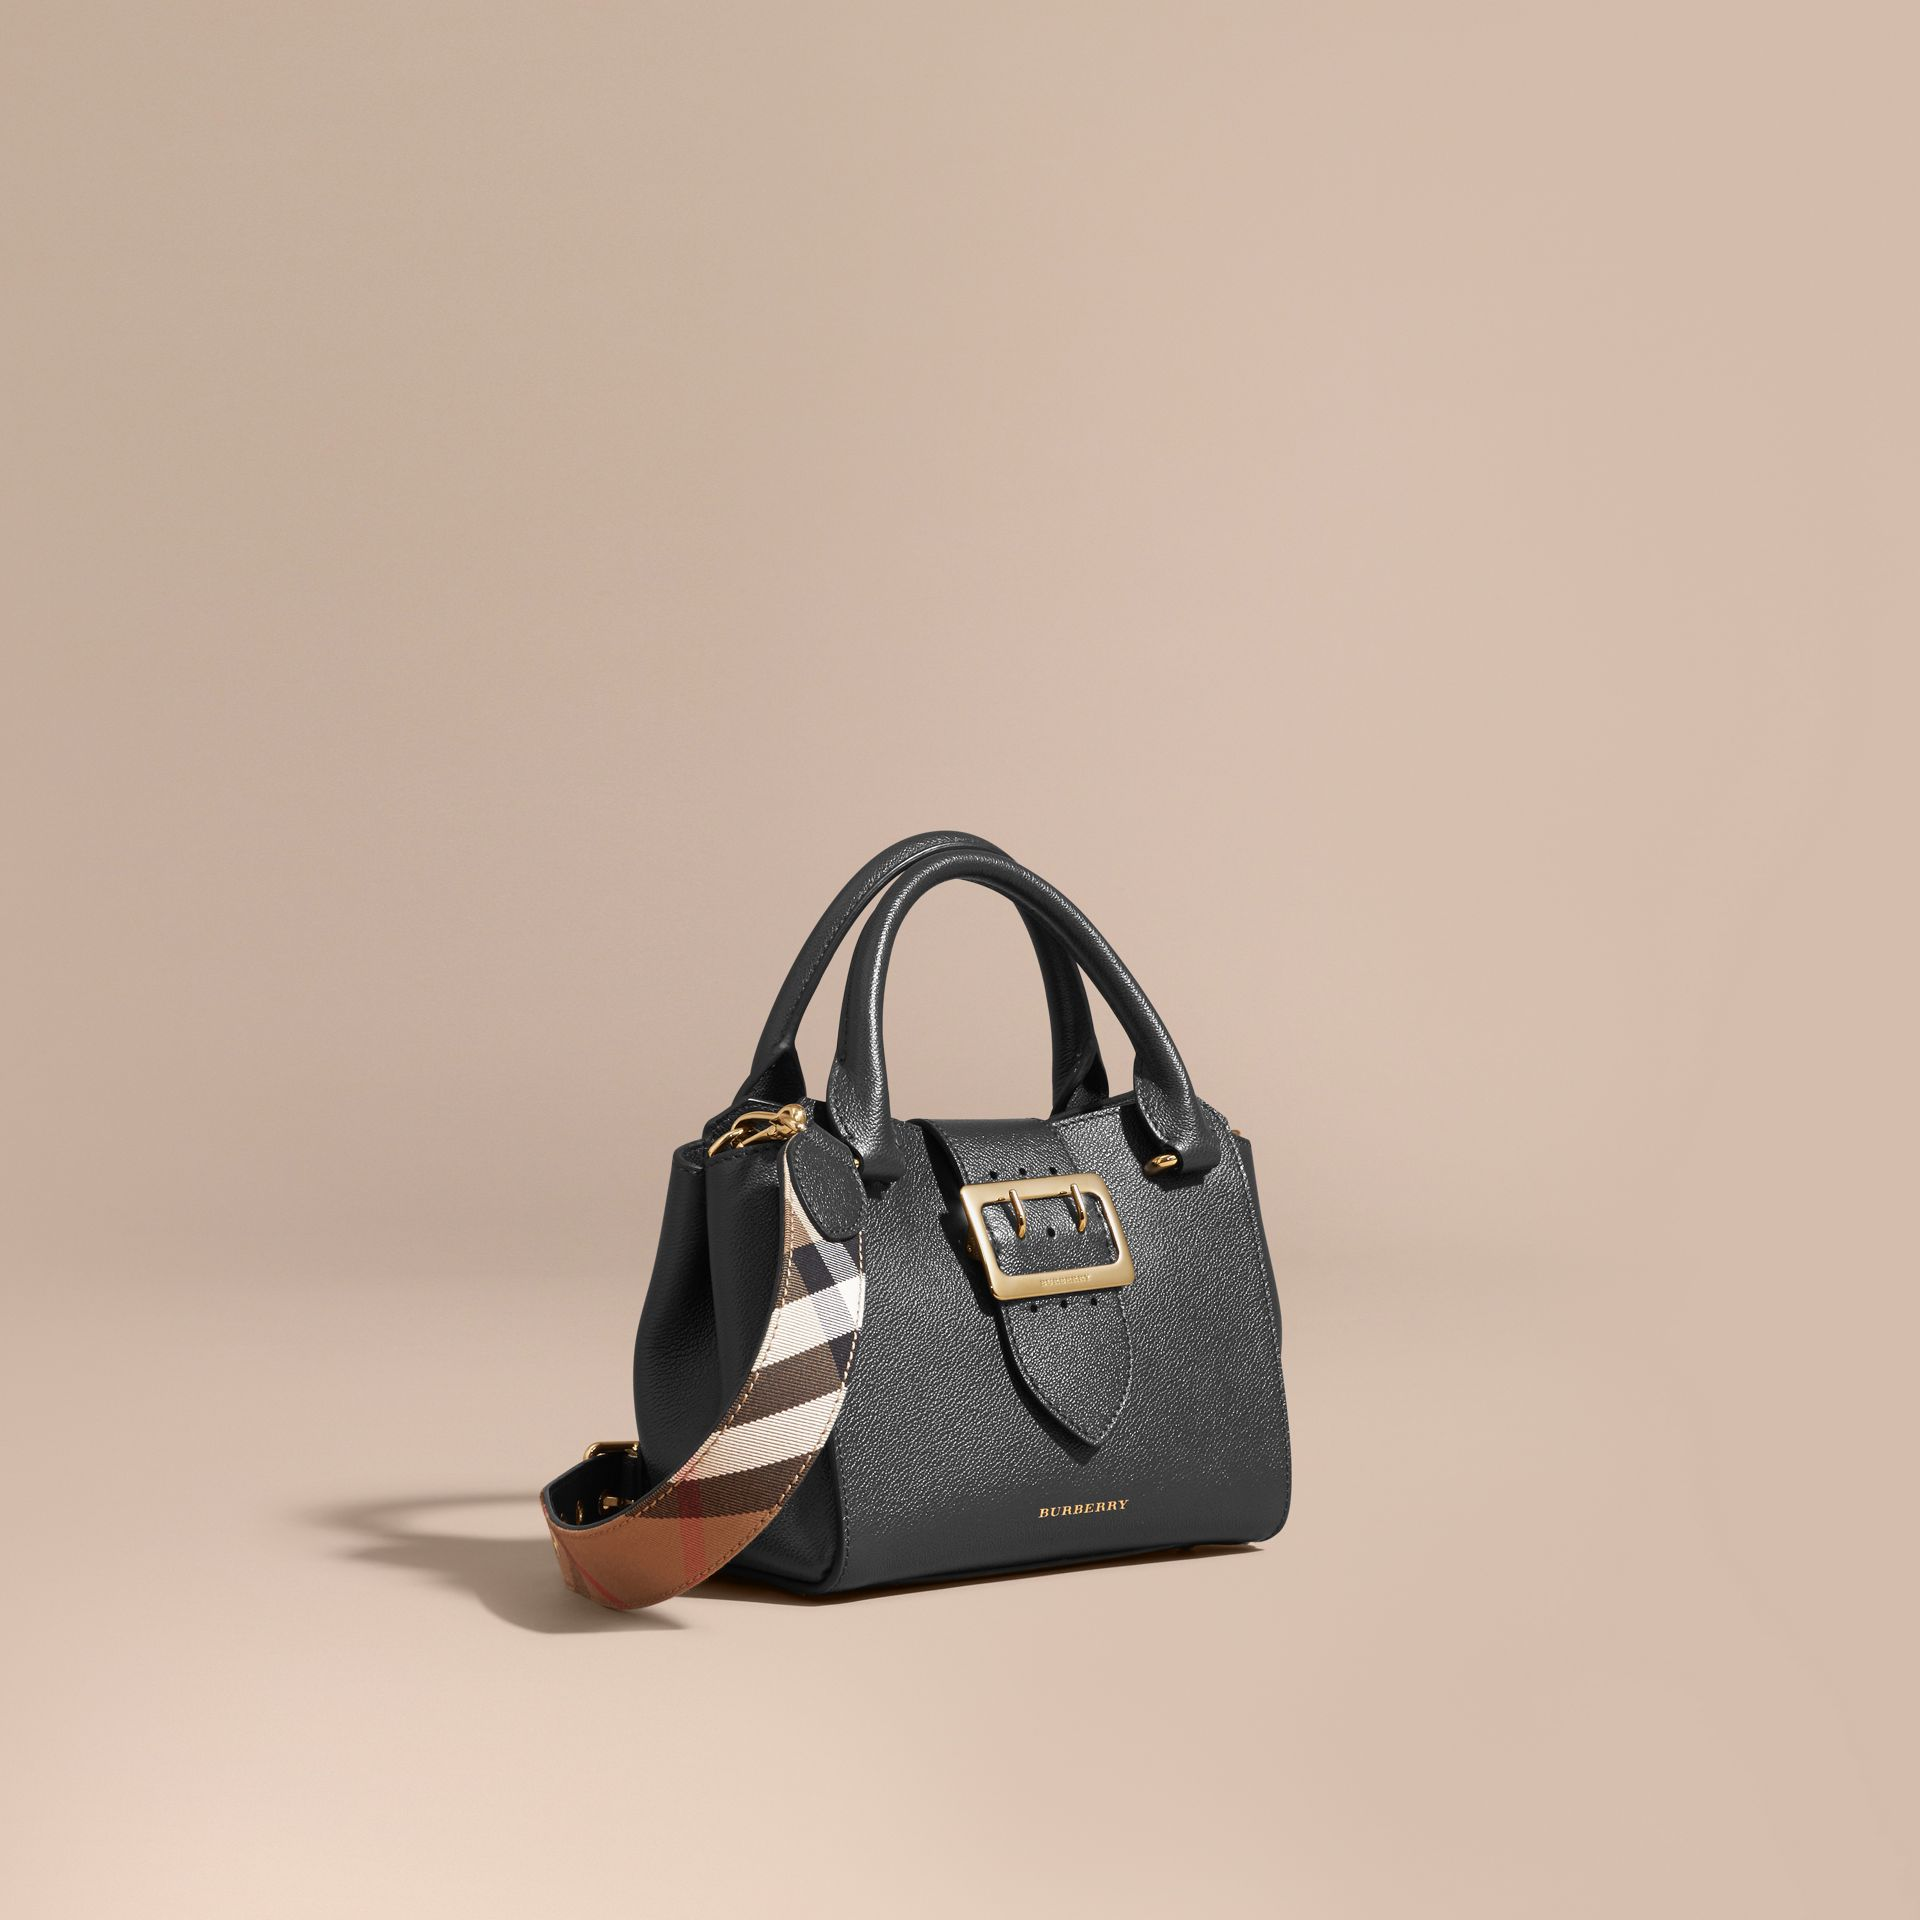 Black The Small Buckle Tote in Grainy Leather Black - gallery image 1